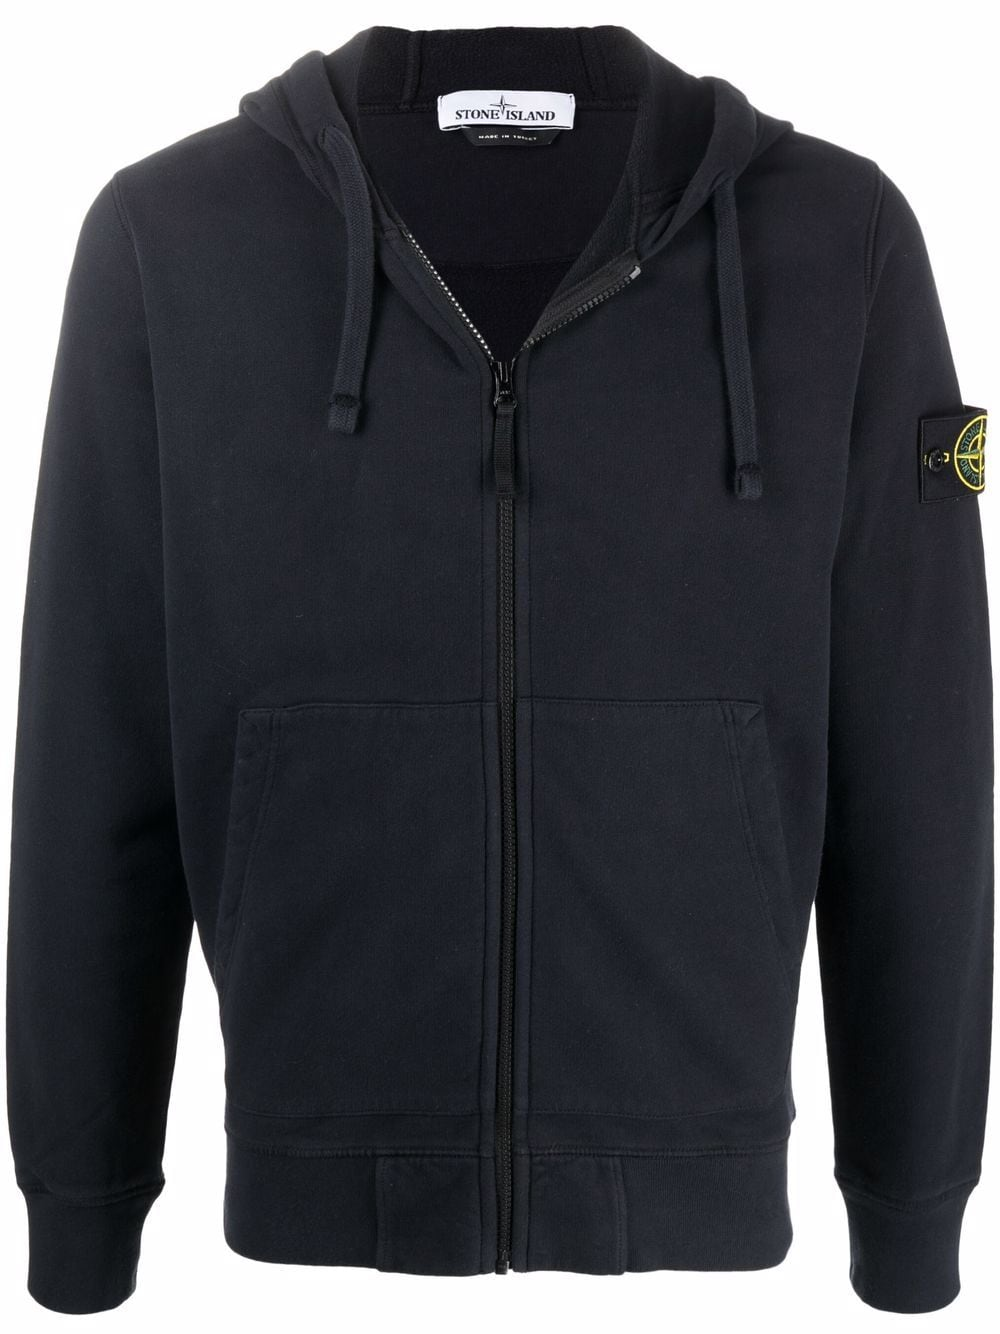 <p class='small-title'>STONE ISLAND</p>Zip Up Hoodie